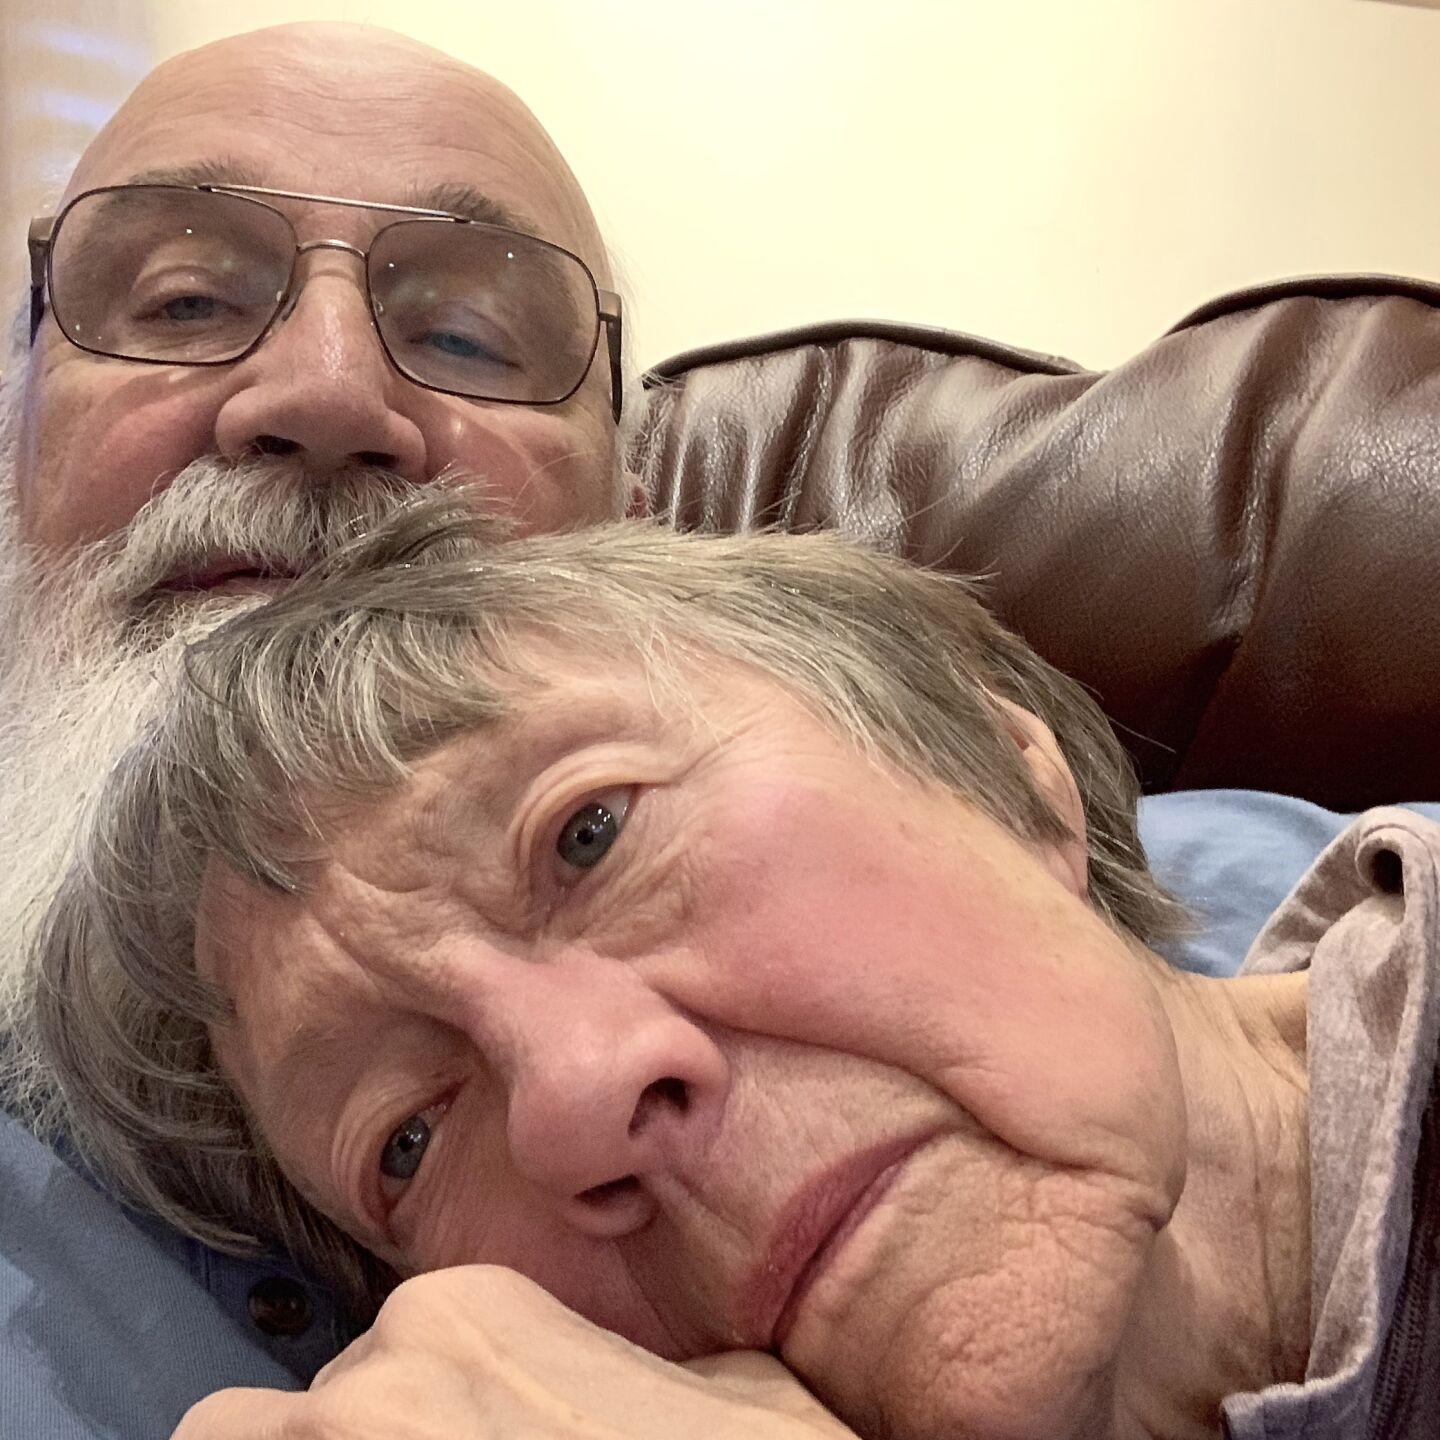 What an ABOMINATION that this man had to SUE to see his wife who resides in the memory care unit of his assisted living center. She was physically and mentally deteriorating without the daily care and comfort he provided. (santafenewmexican.com)